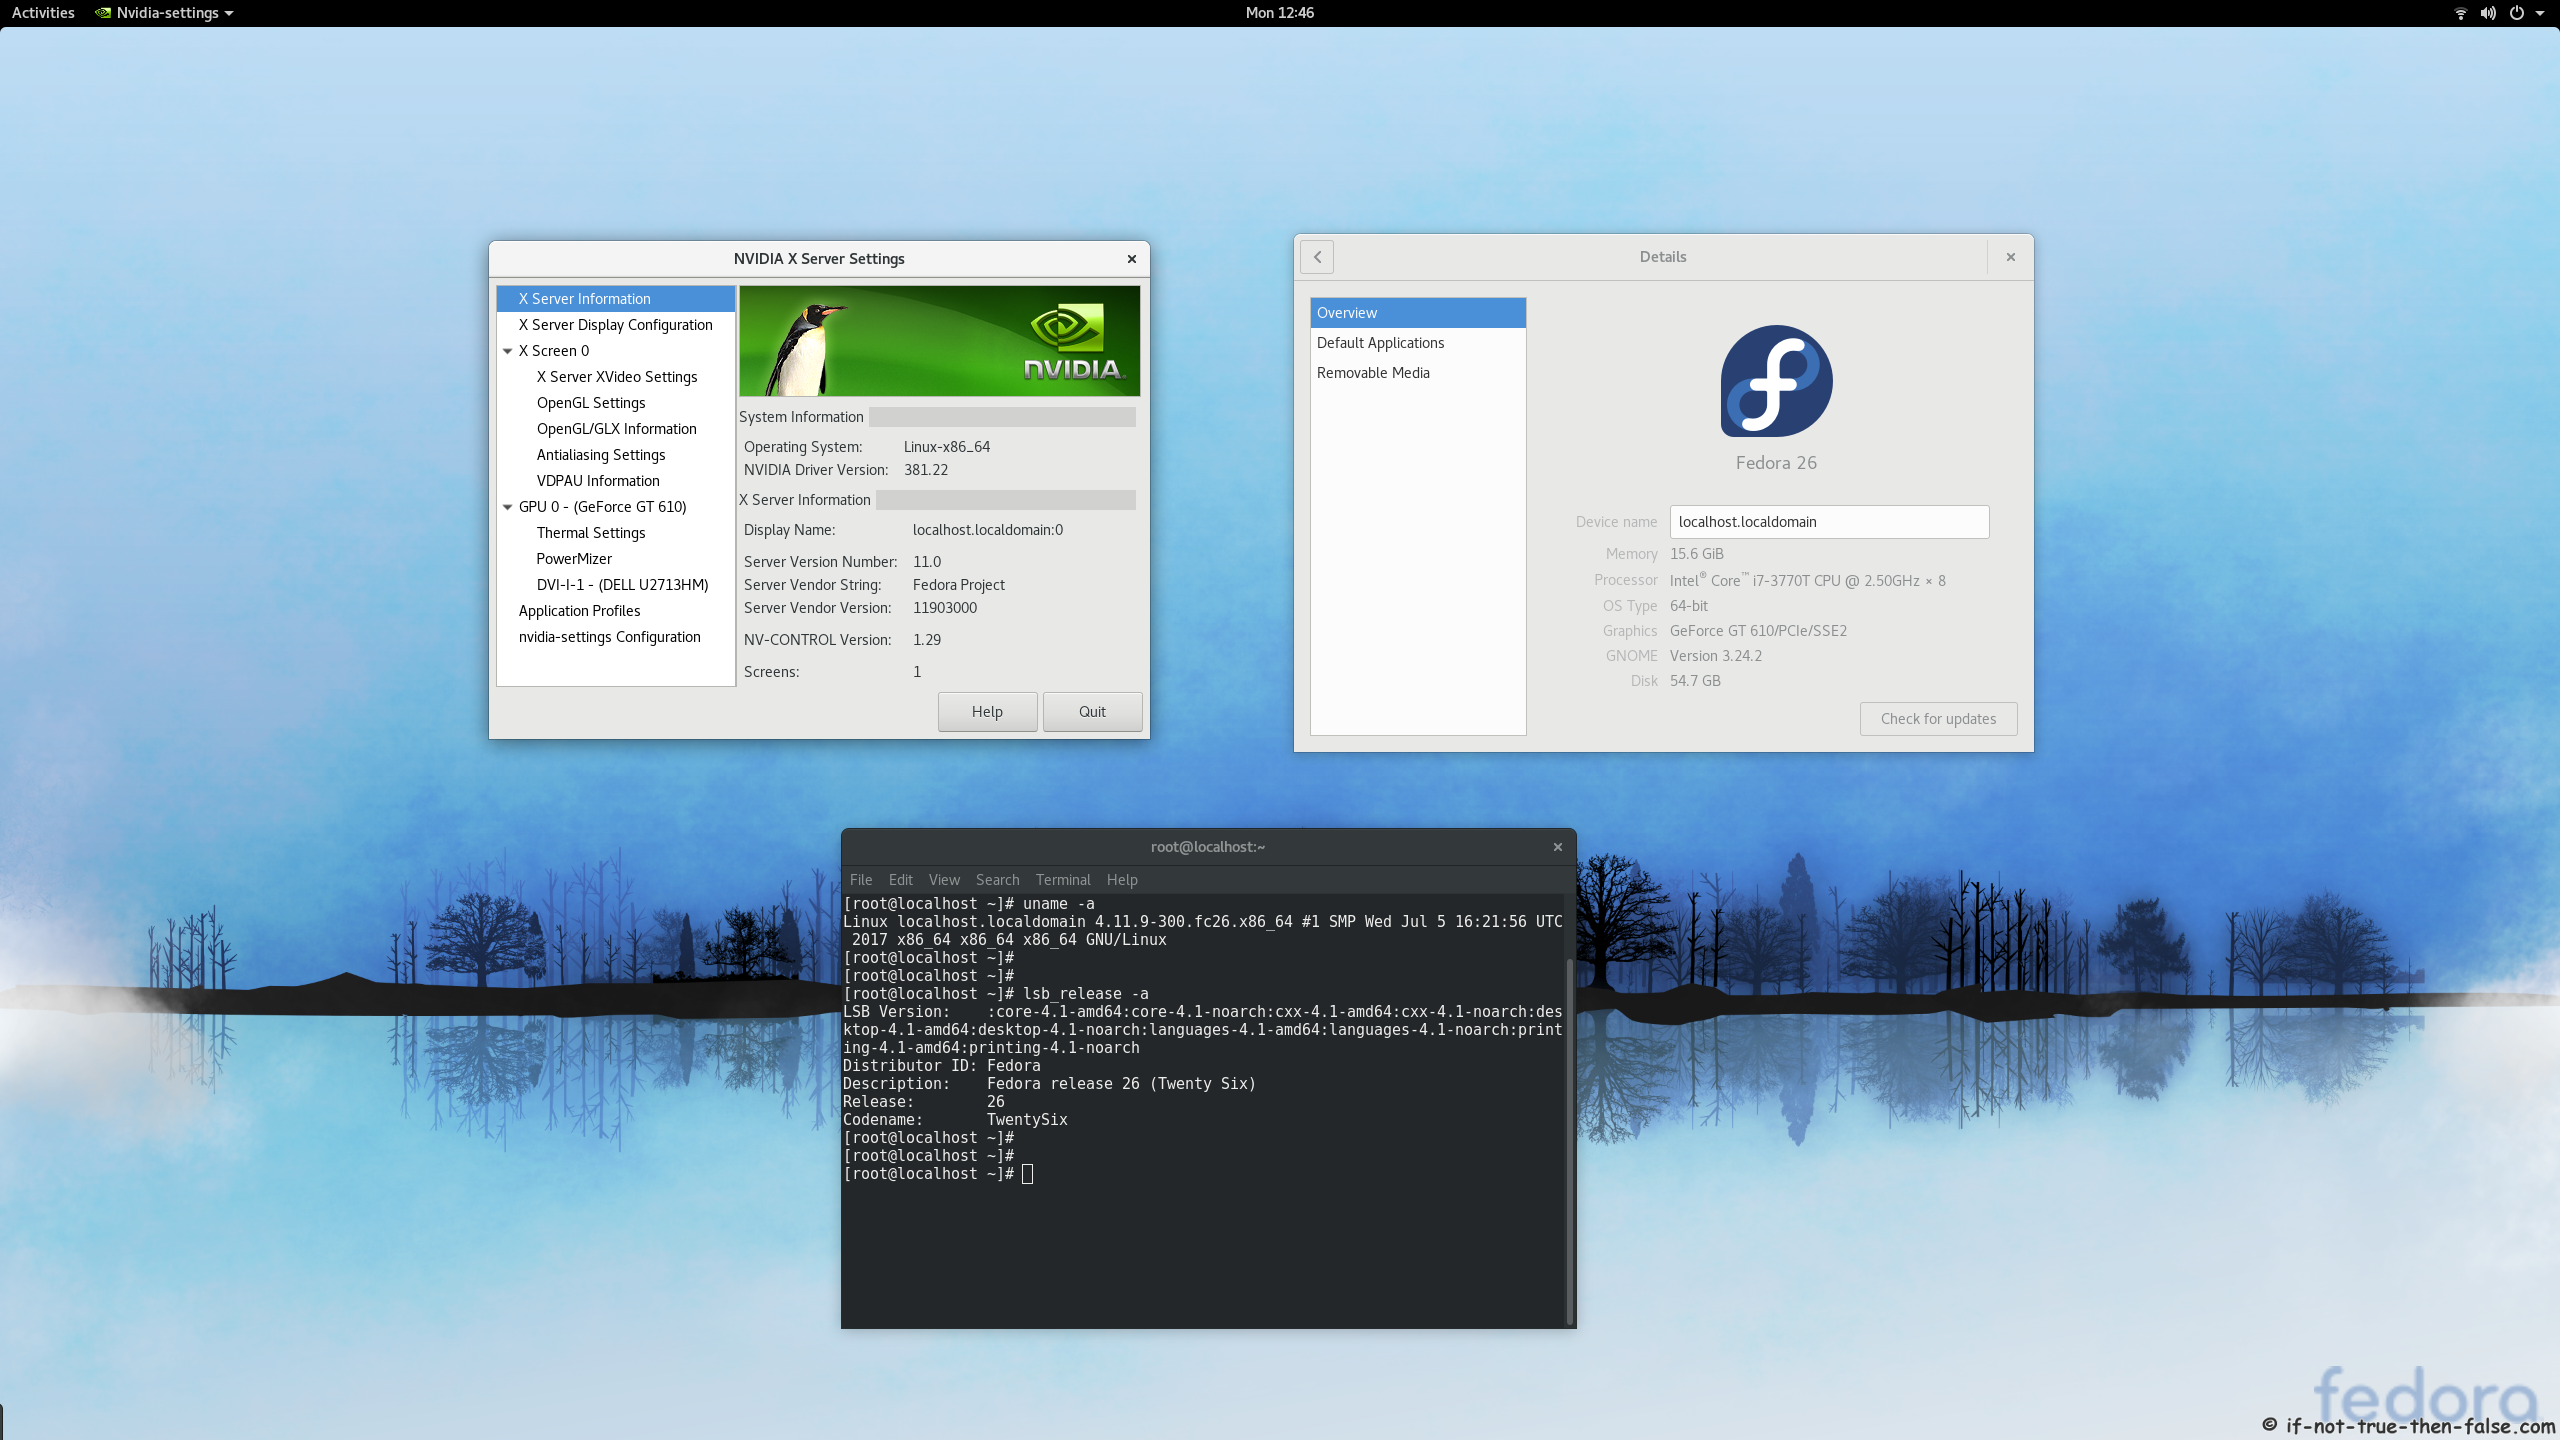 nVidia 381.22 drivers on Fedora 26 Gnome 3.24.2 with Kernel 4.11